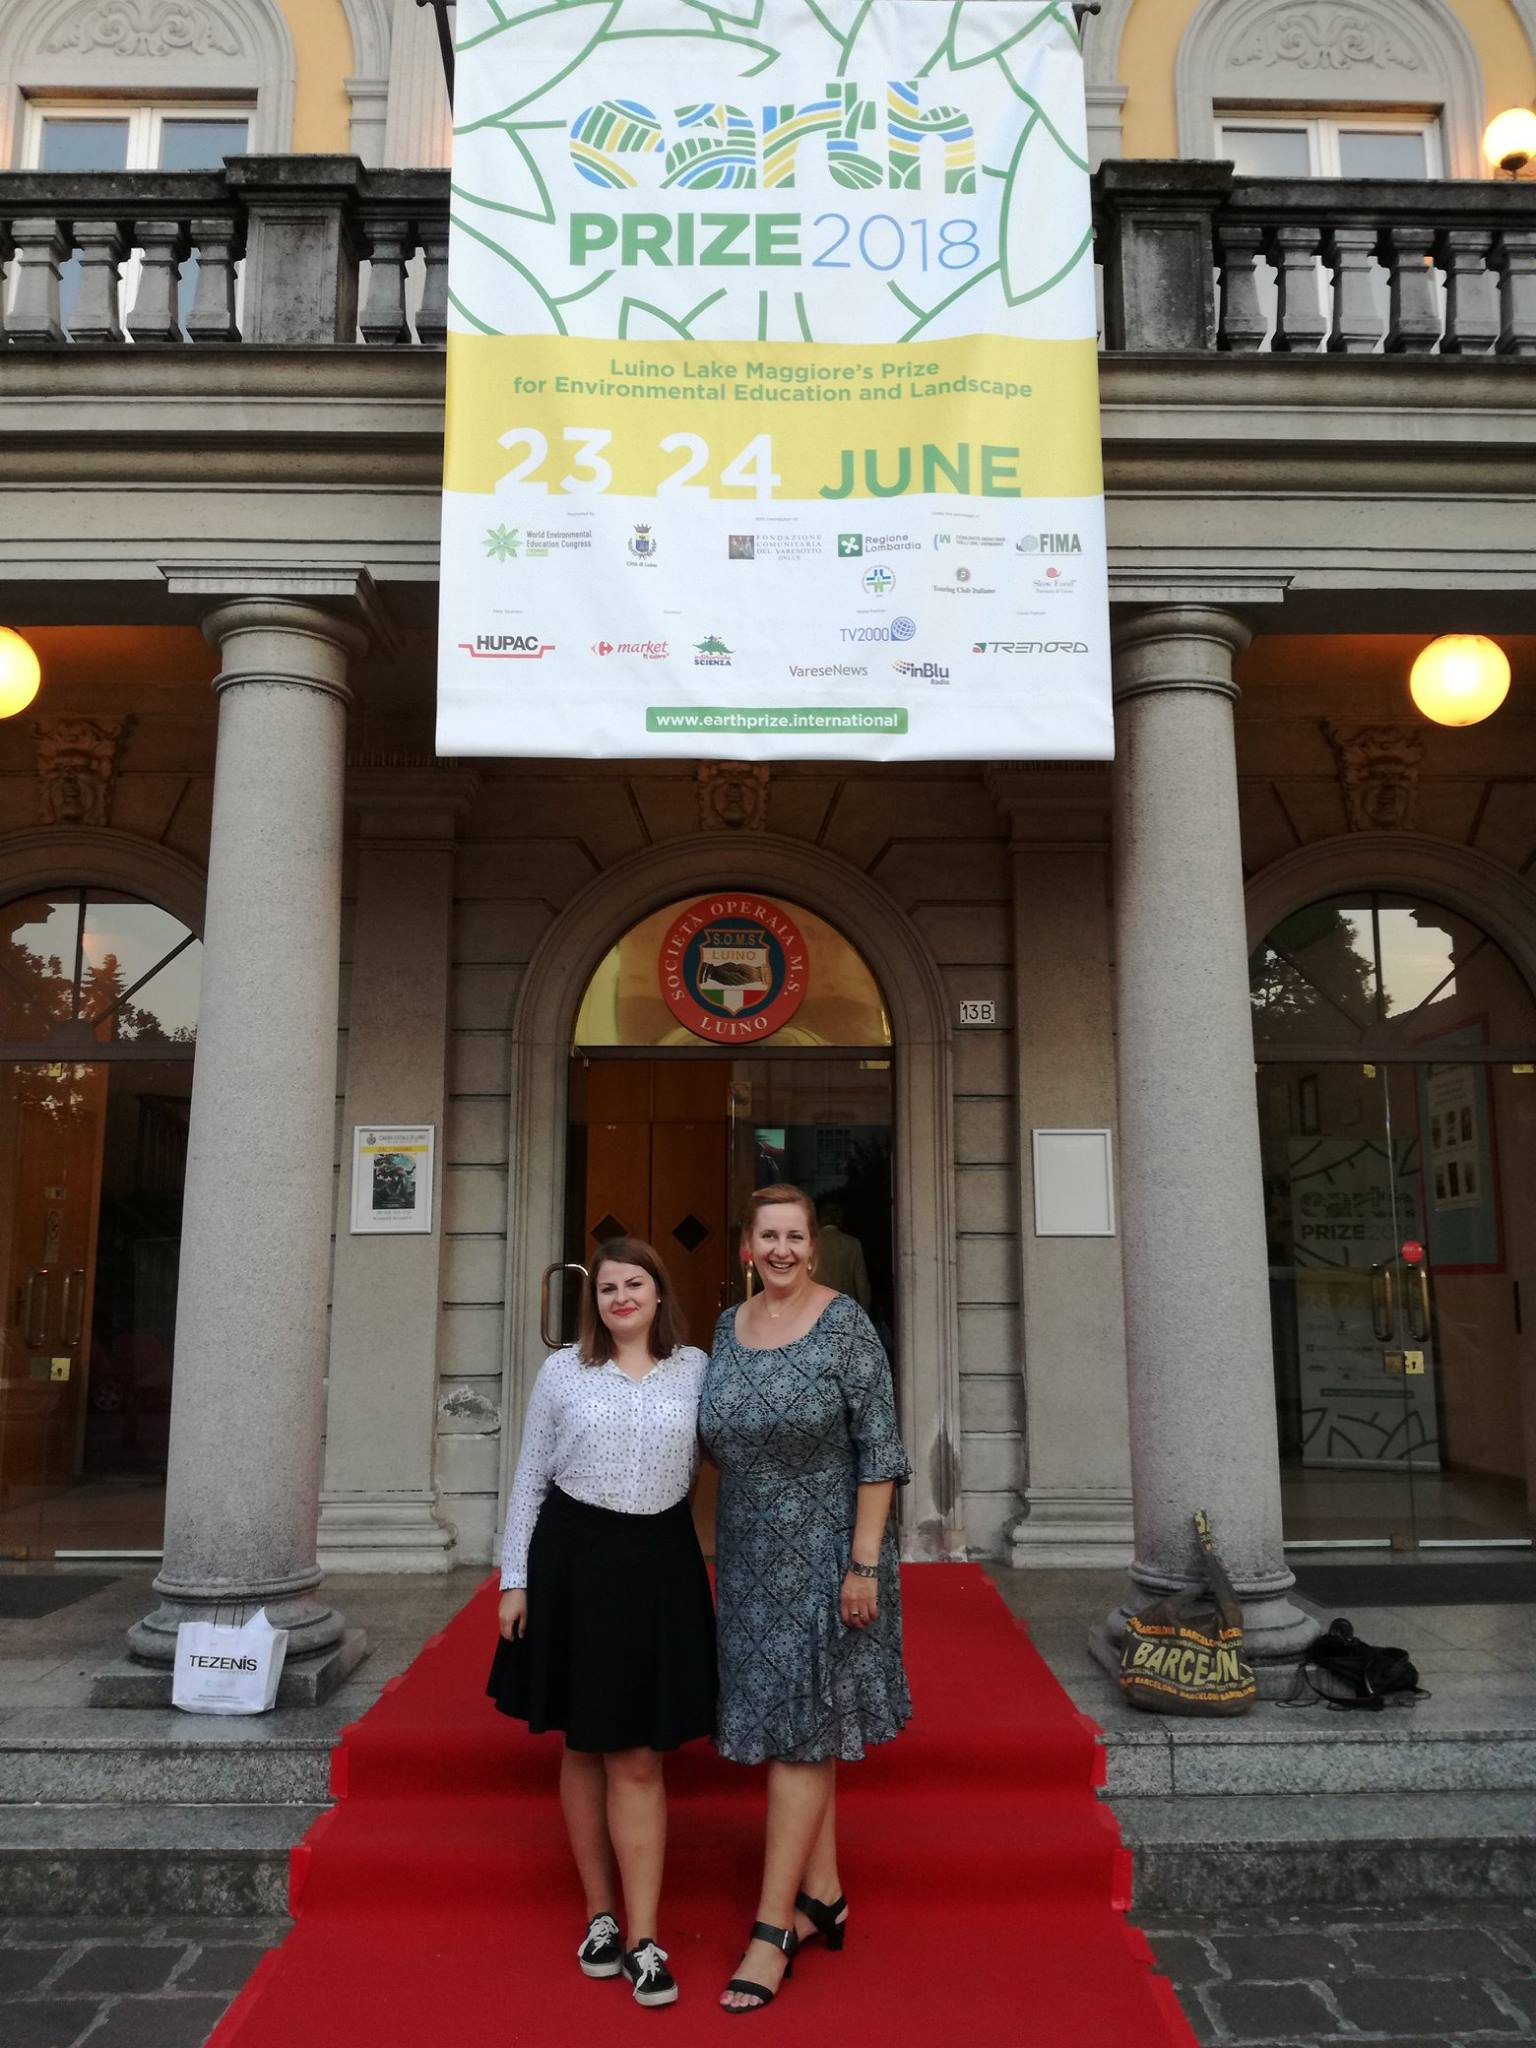 YRE International awarded with the Earth Prize 2018